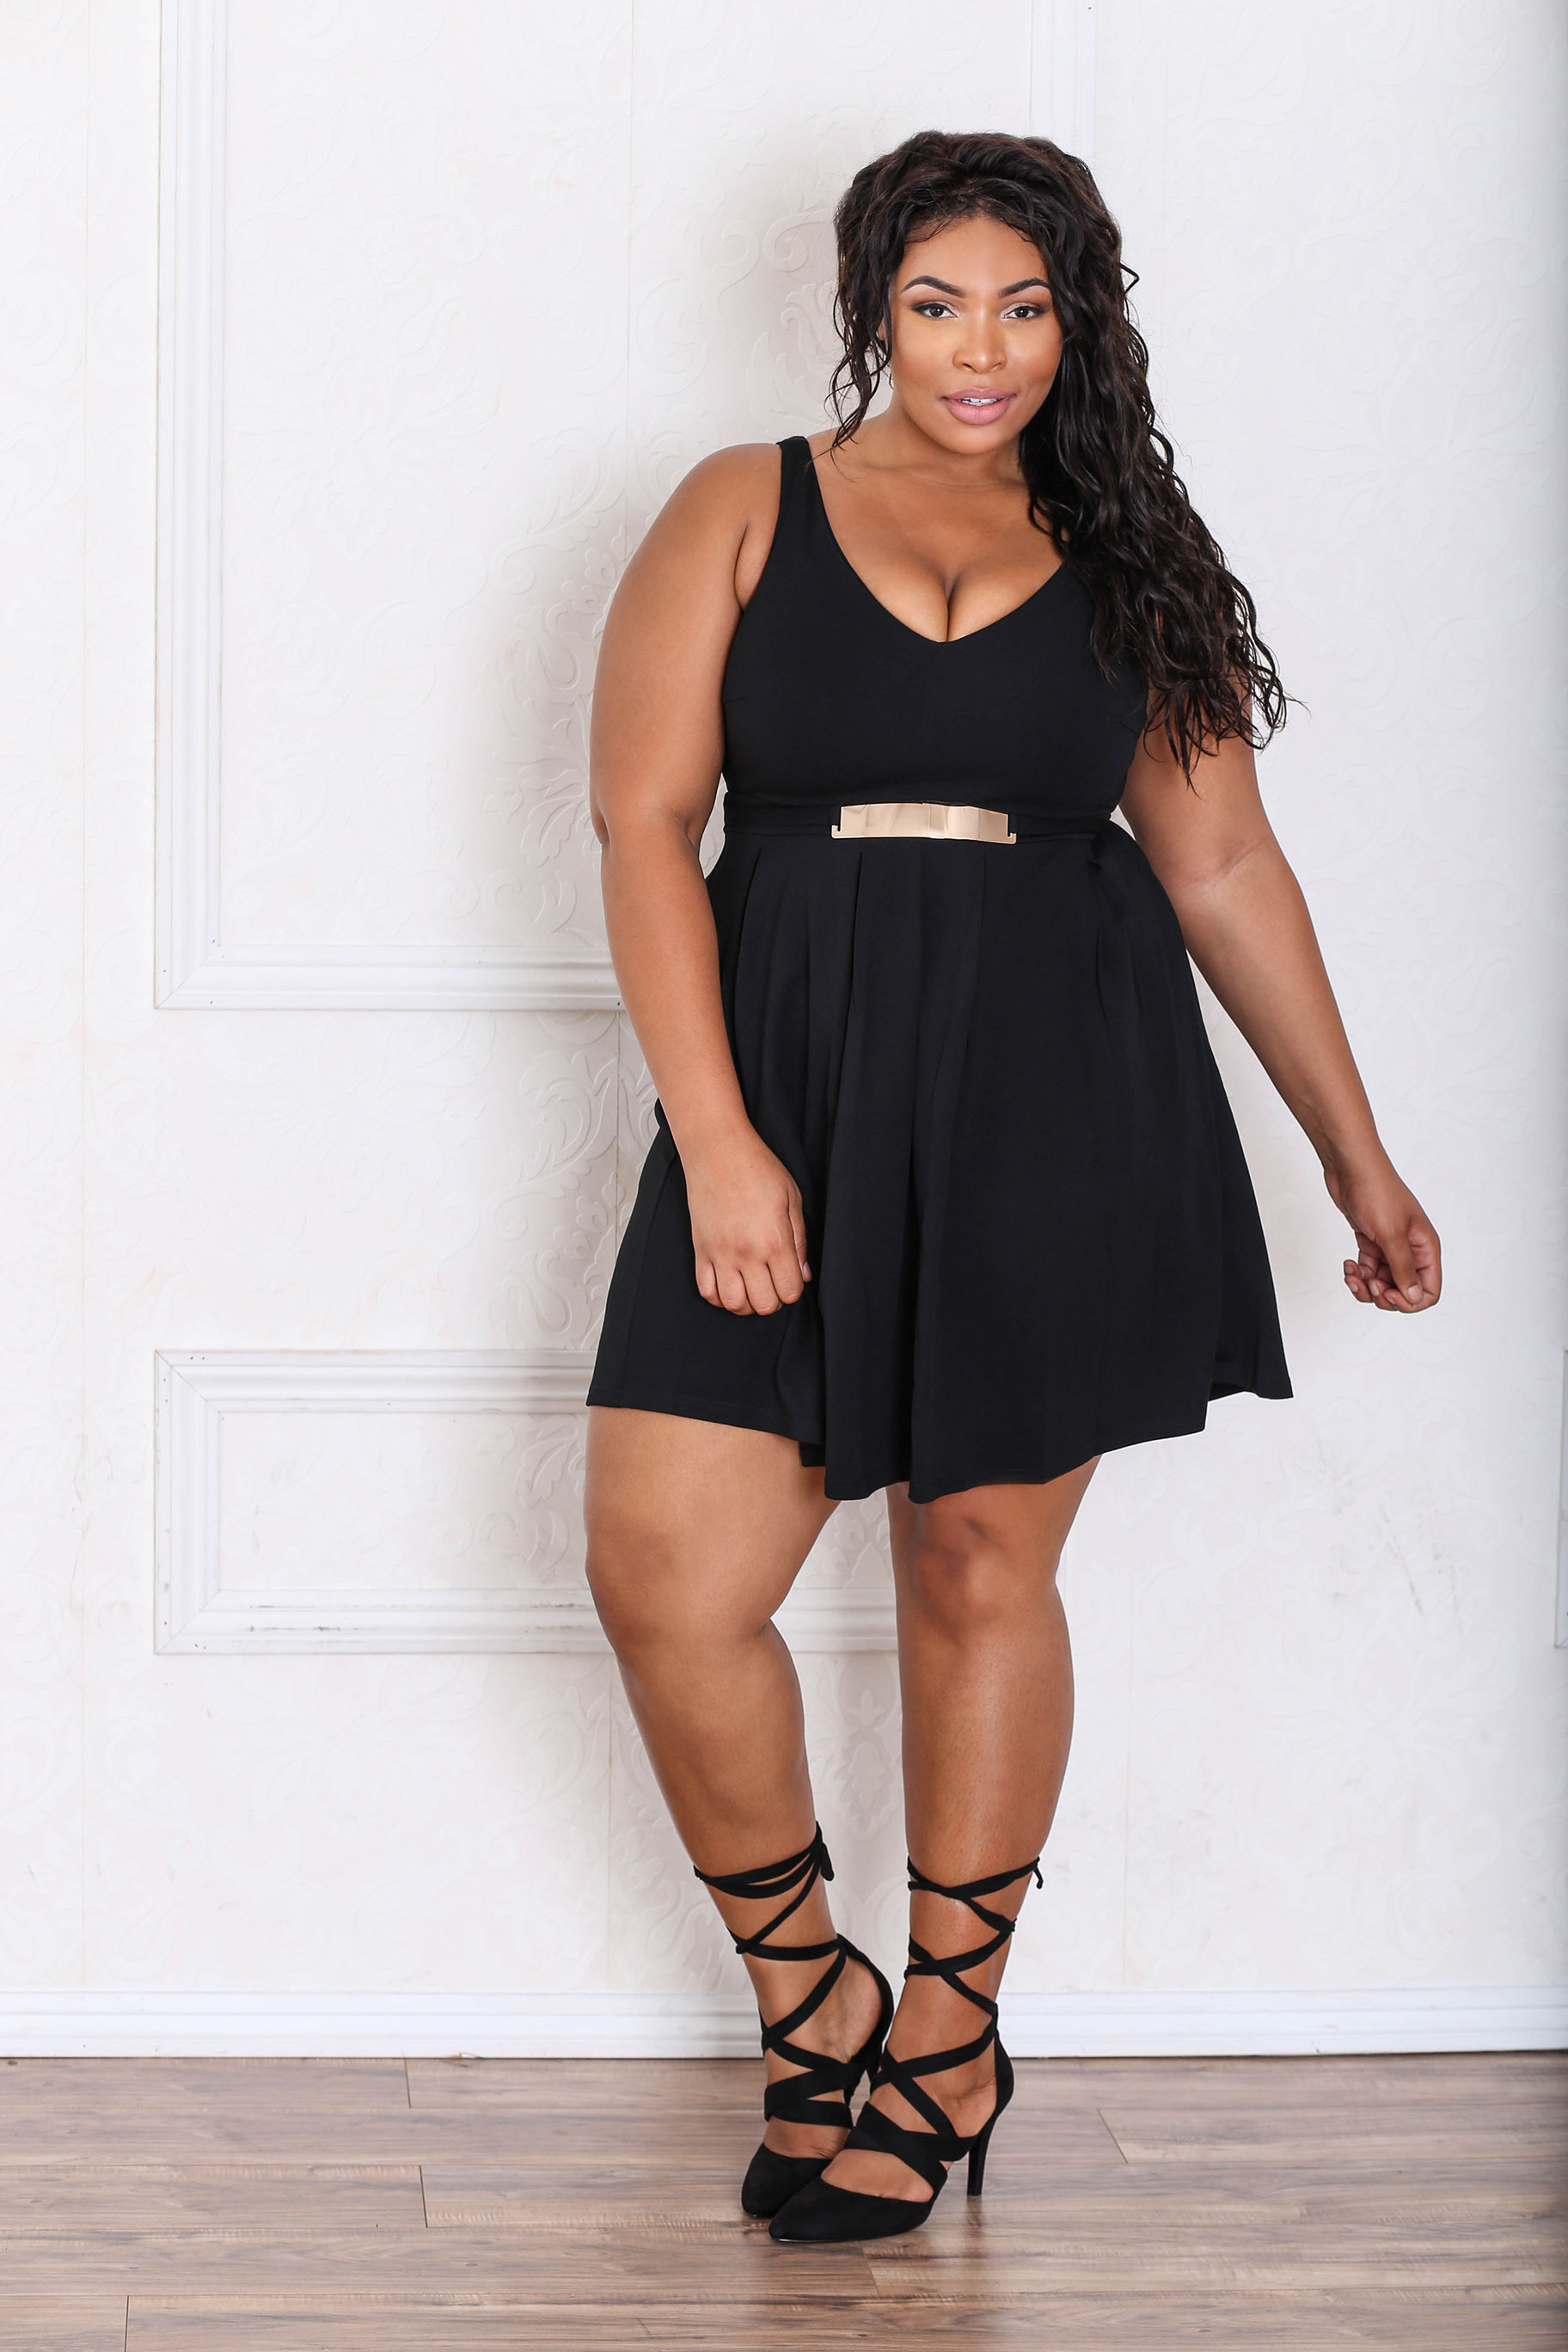 trendy curvy - page 19 of 48 - plus size fashion blogtrendy curvy